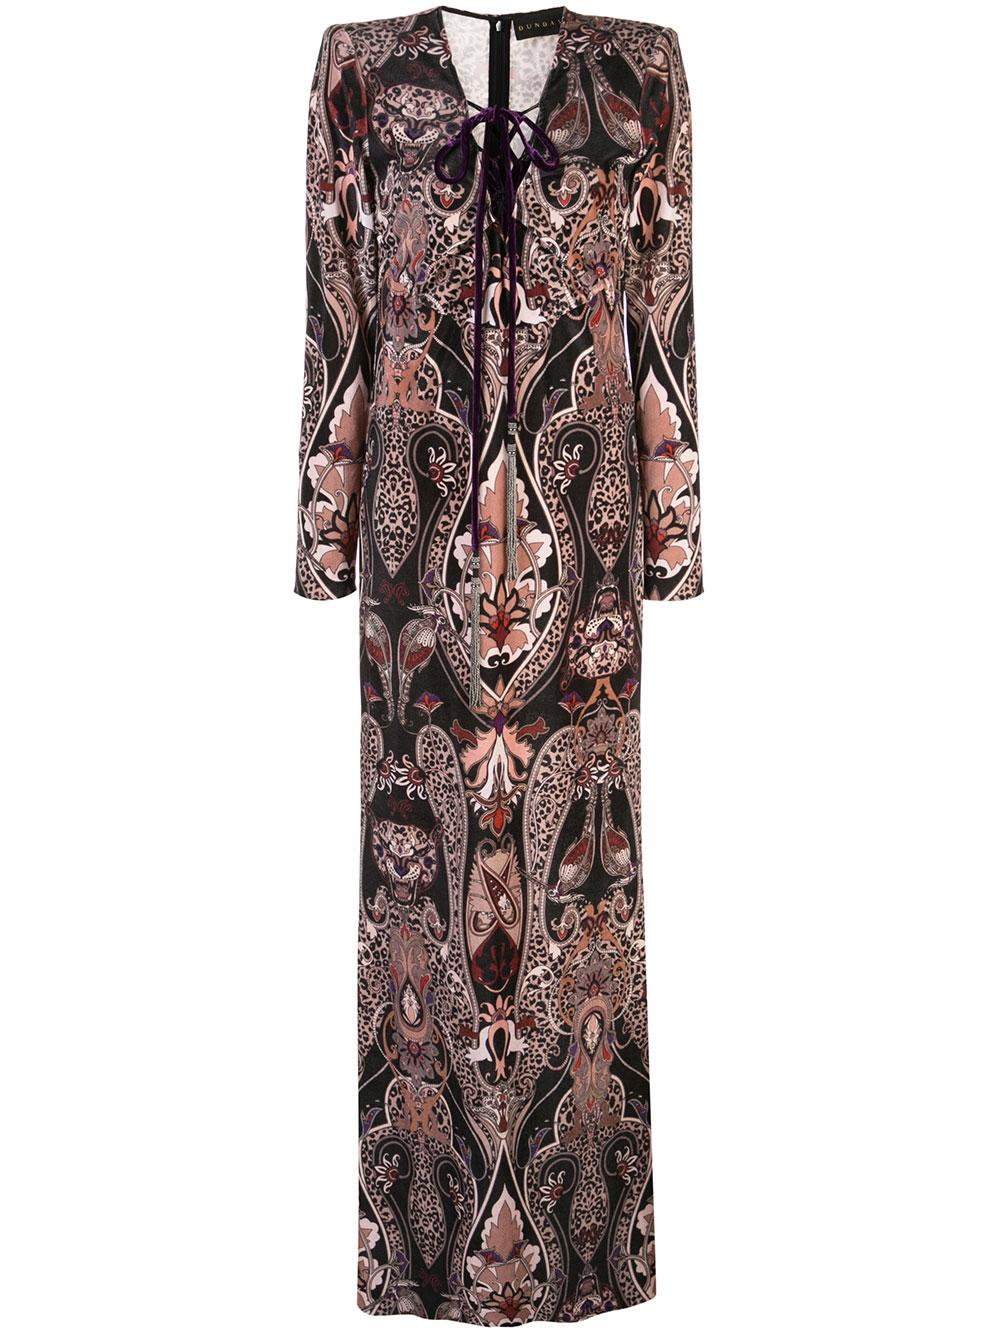 Long Sleeve Long Printed Velvet Dress With Lace Up Item # DDR187